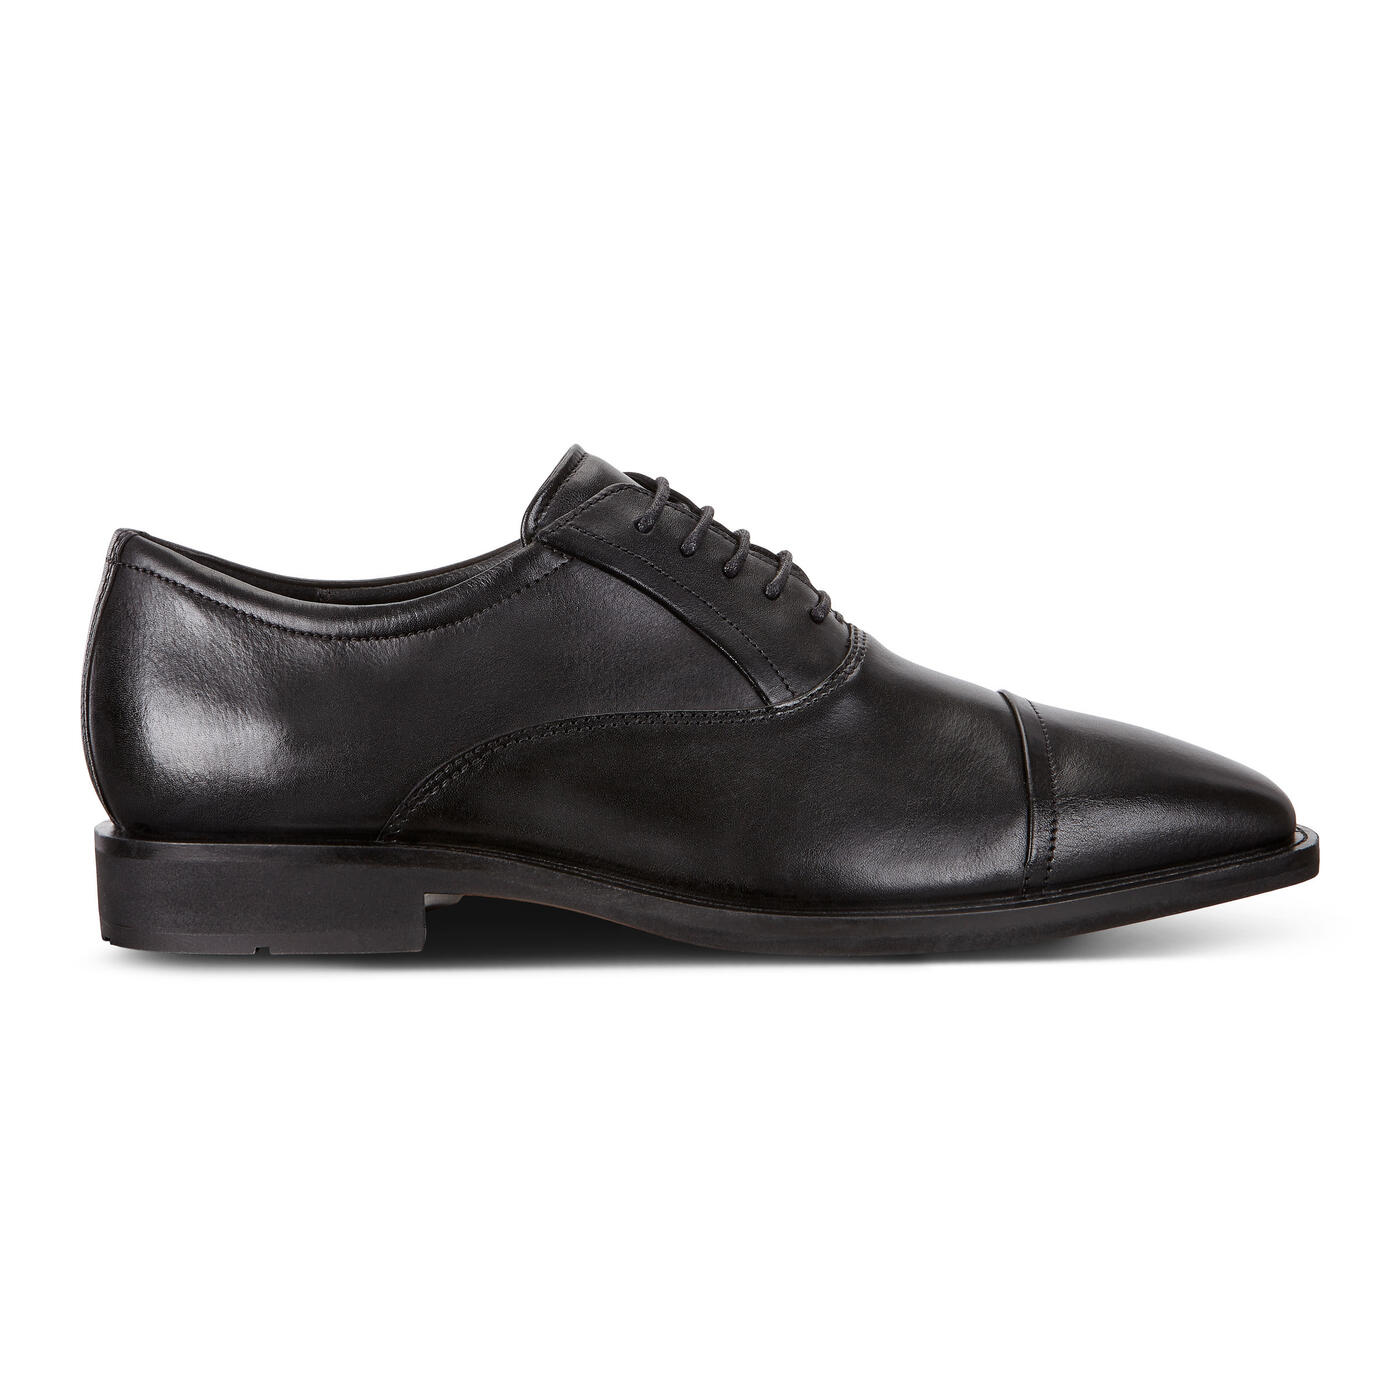 ECCO CALCAN Cap Toe Tie Oxford